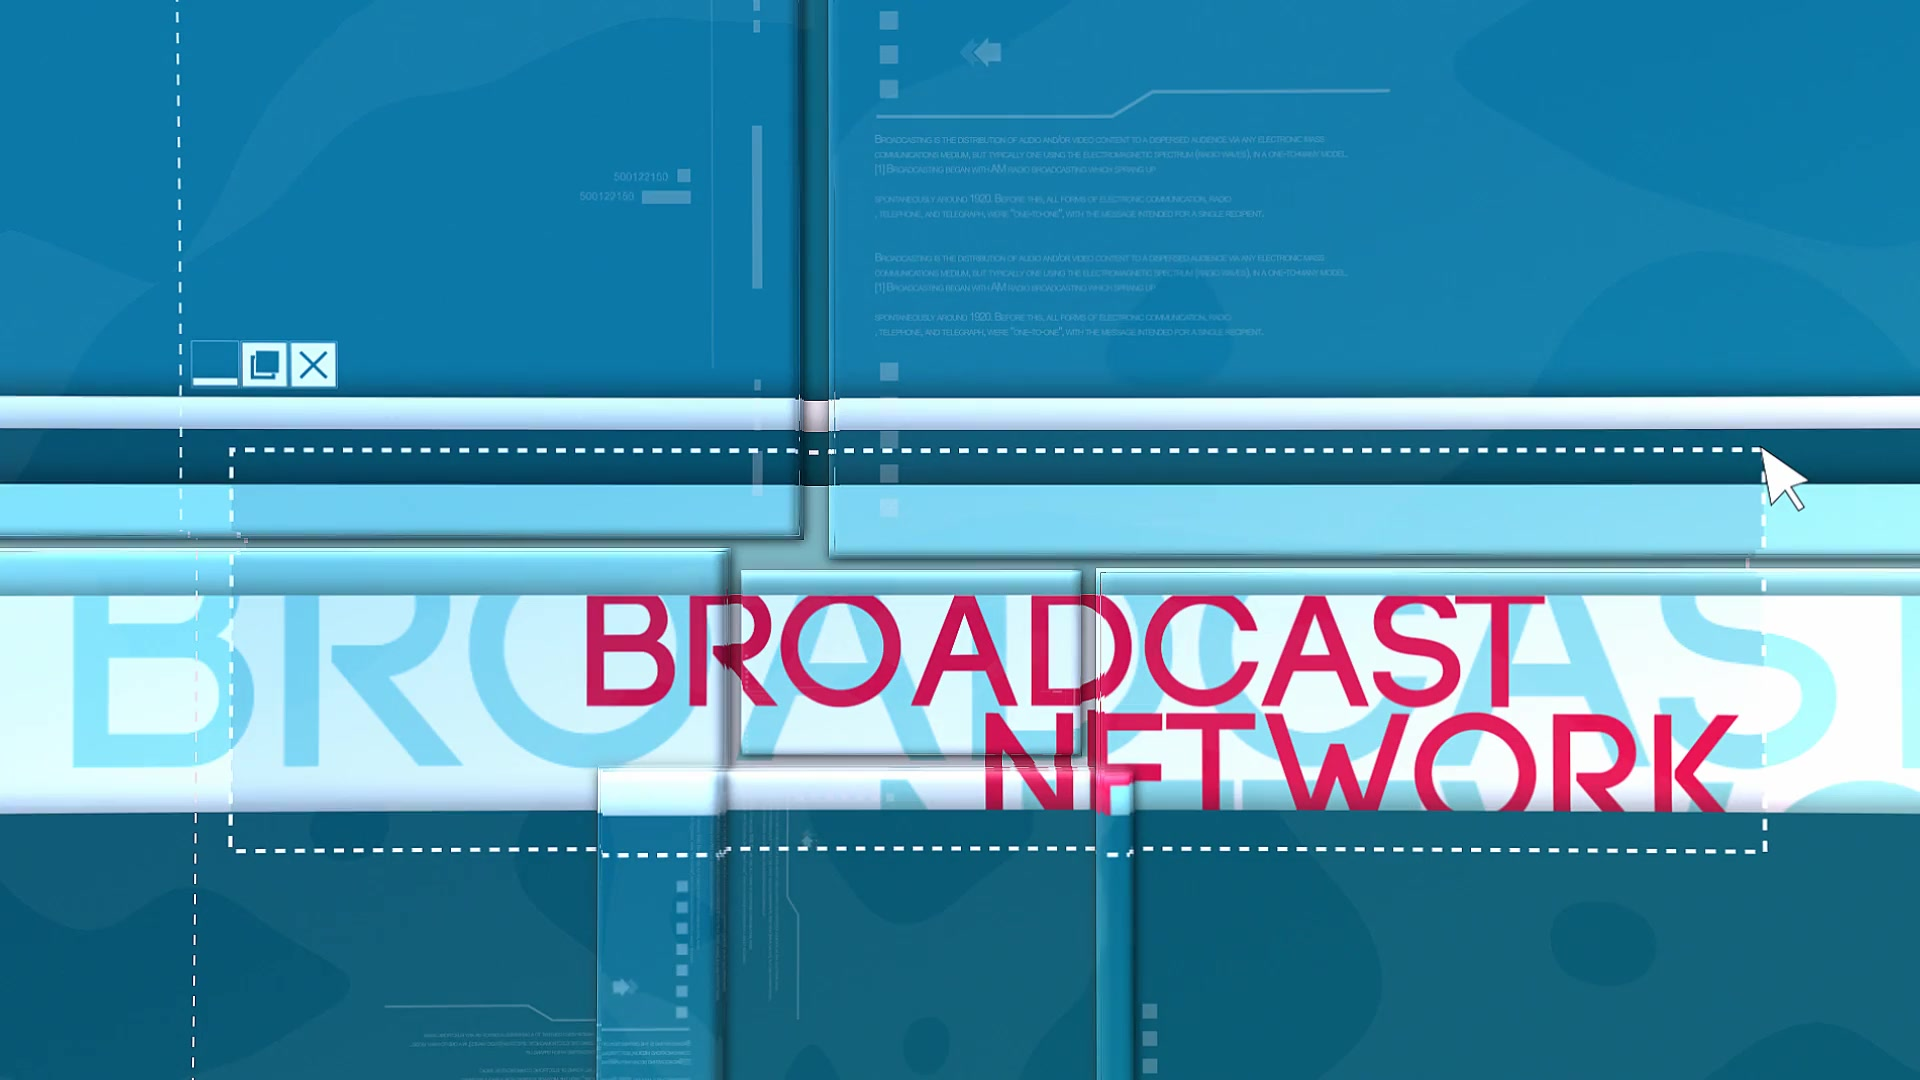 Broadcast Network - Download Videohive 11459409